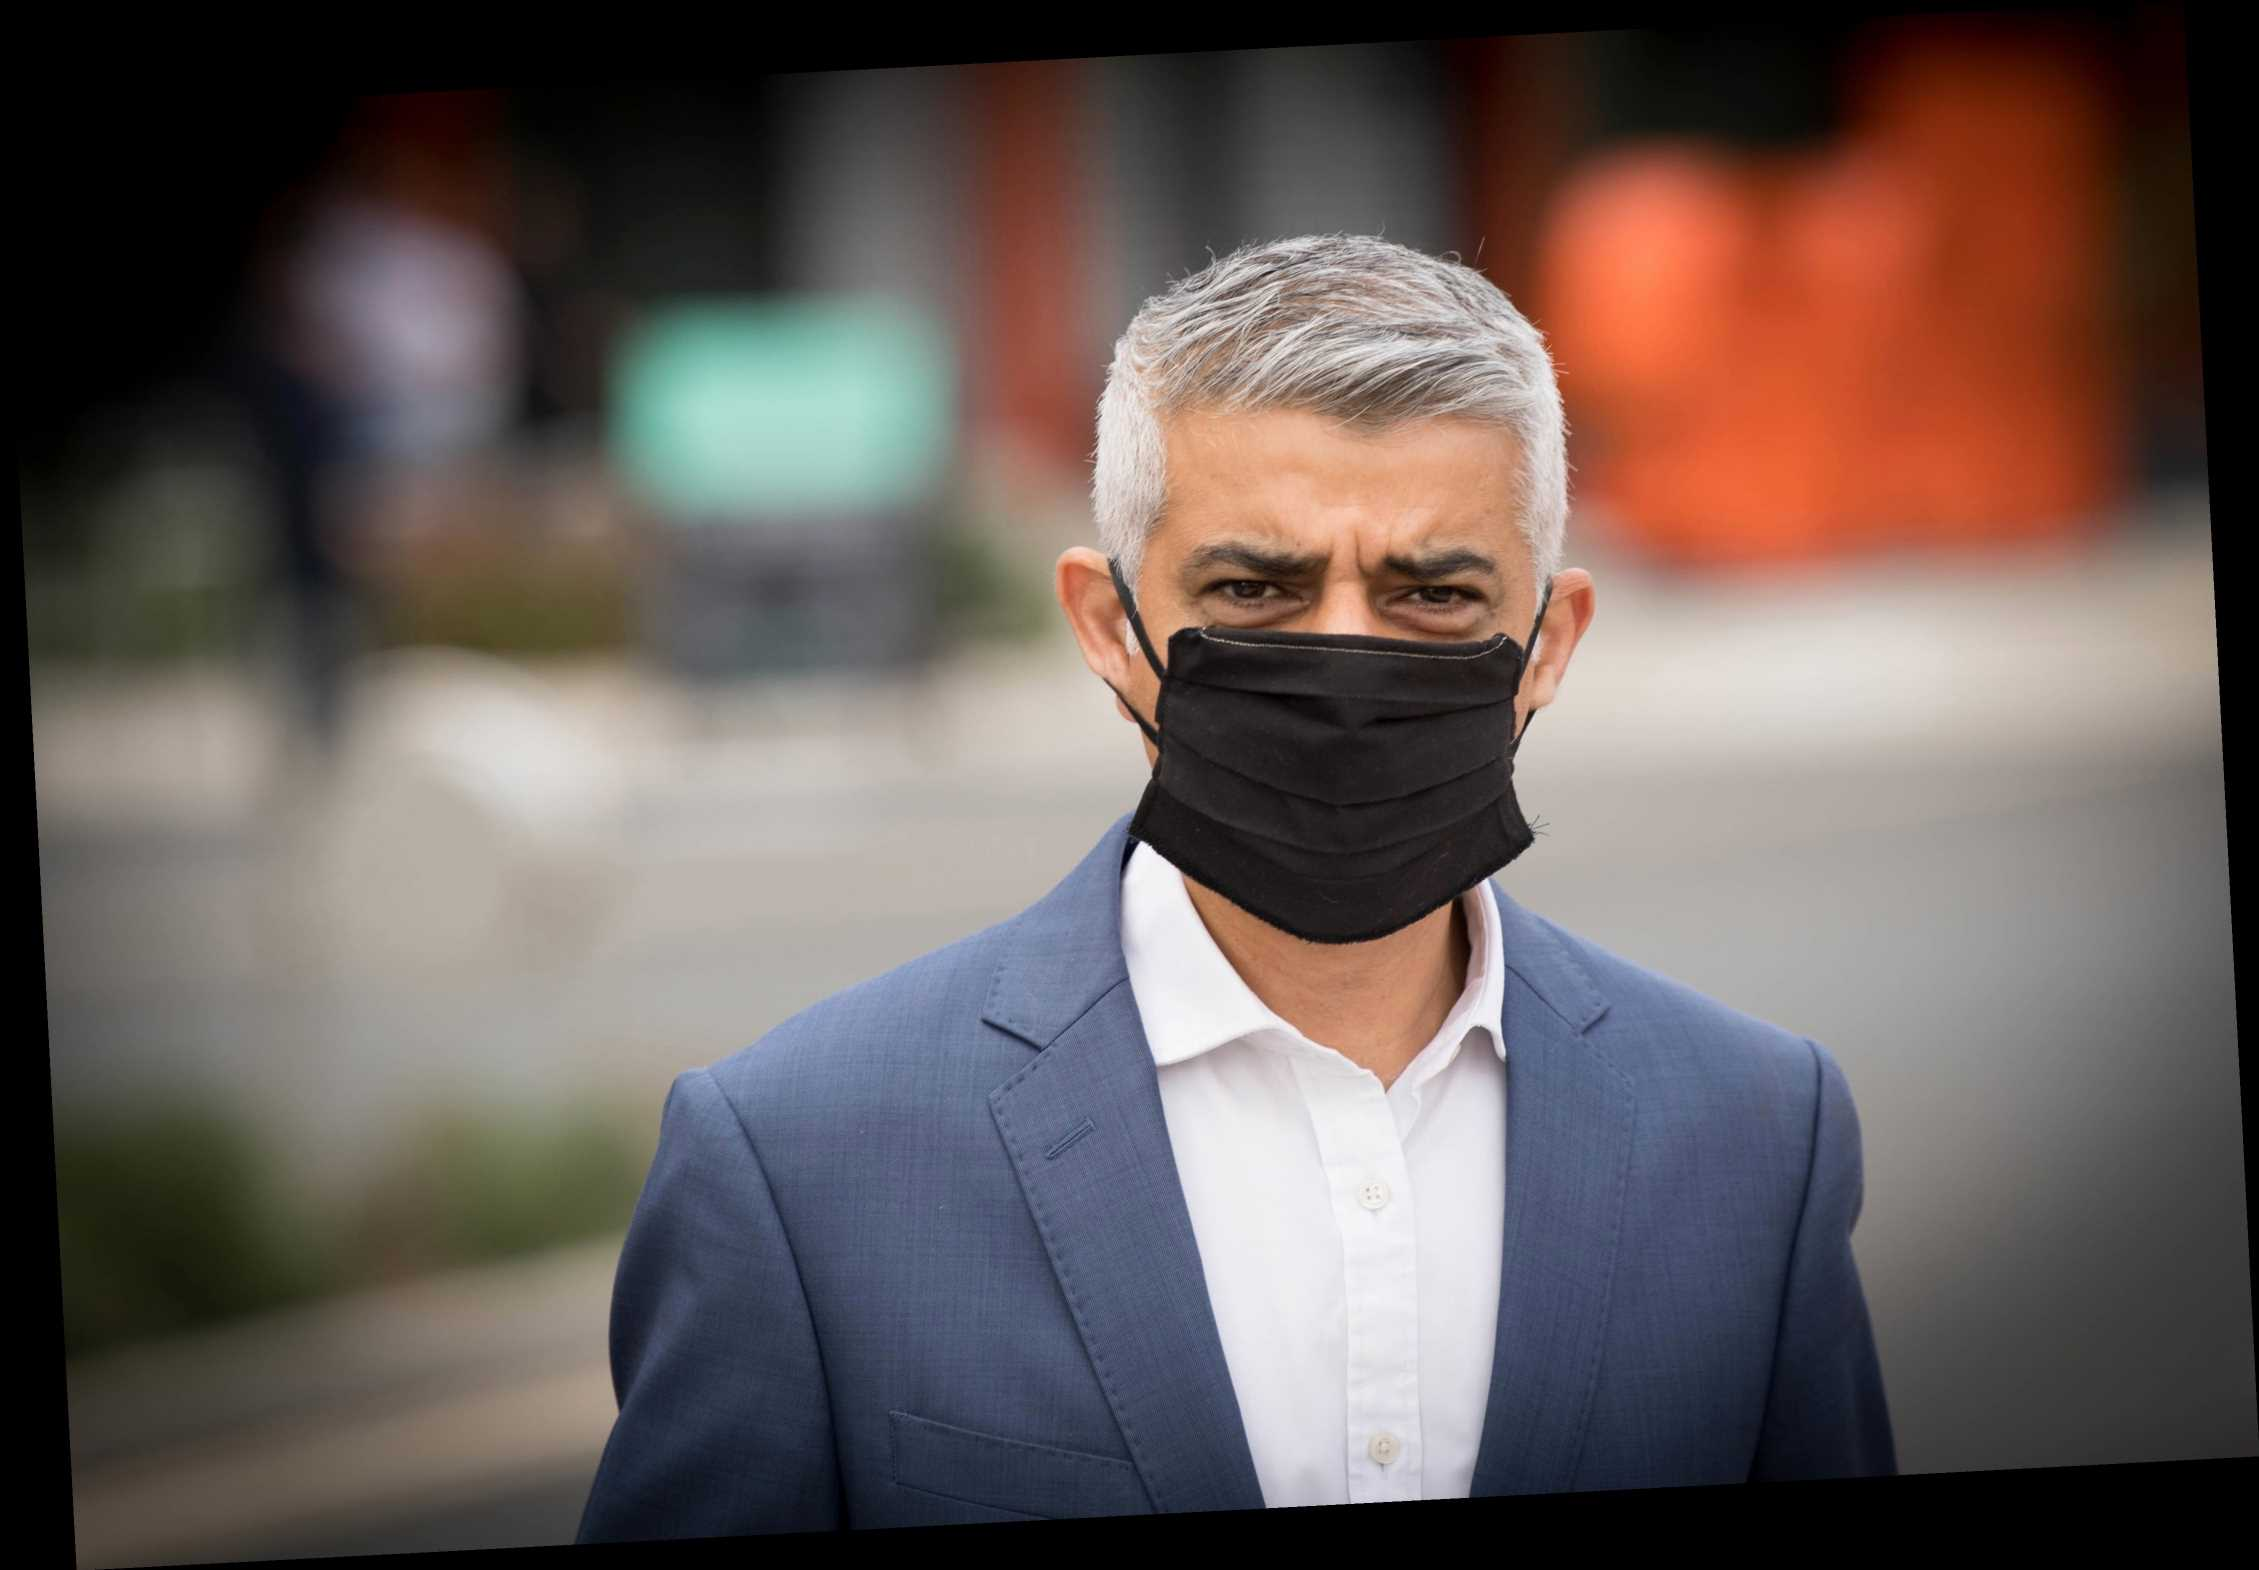 Sadiq Khan accused of 'forgetting his roots and betraying his communities' as Mayor